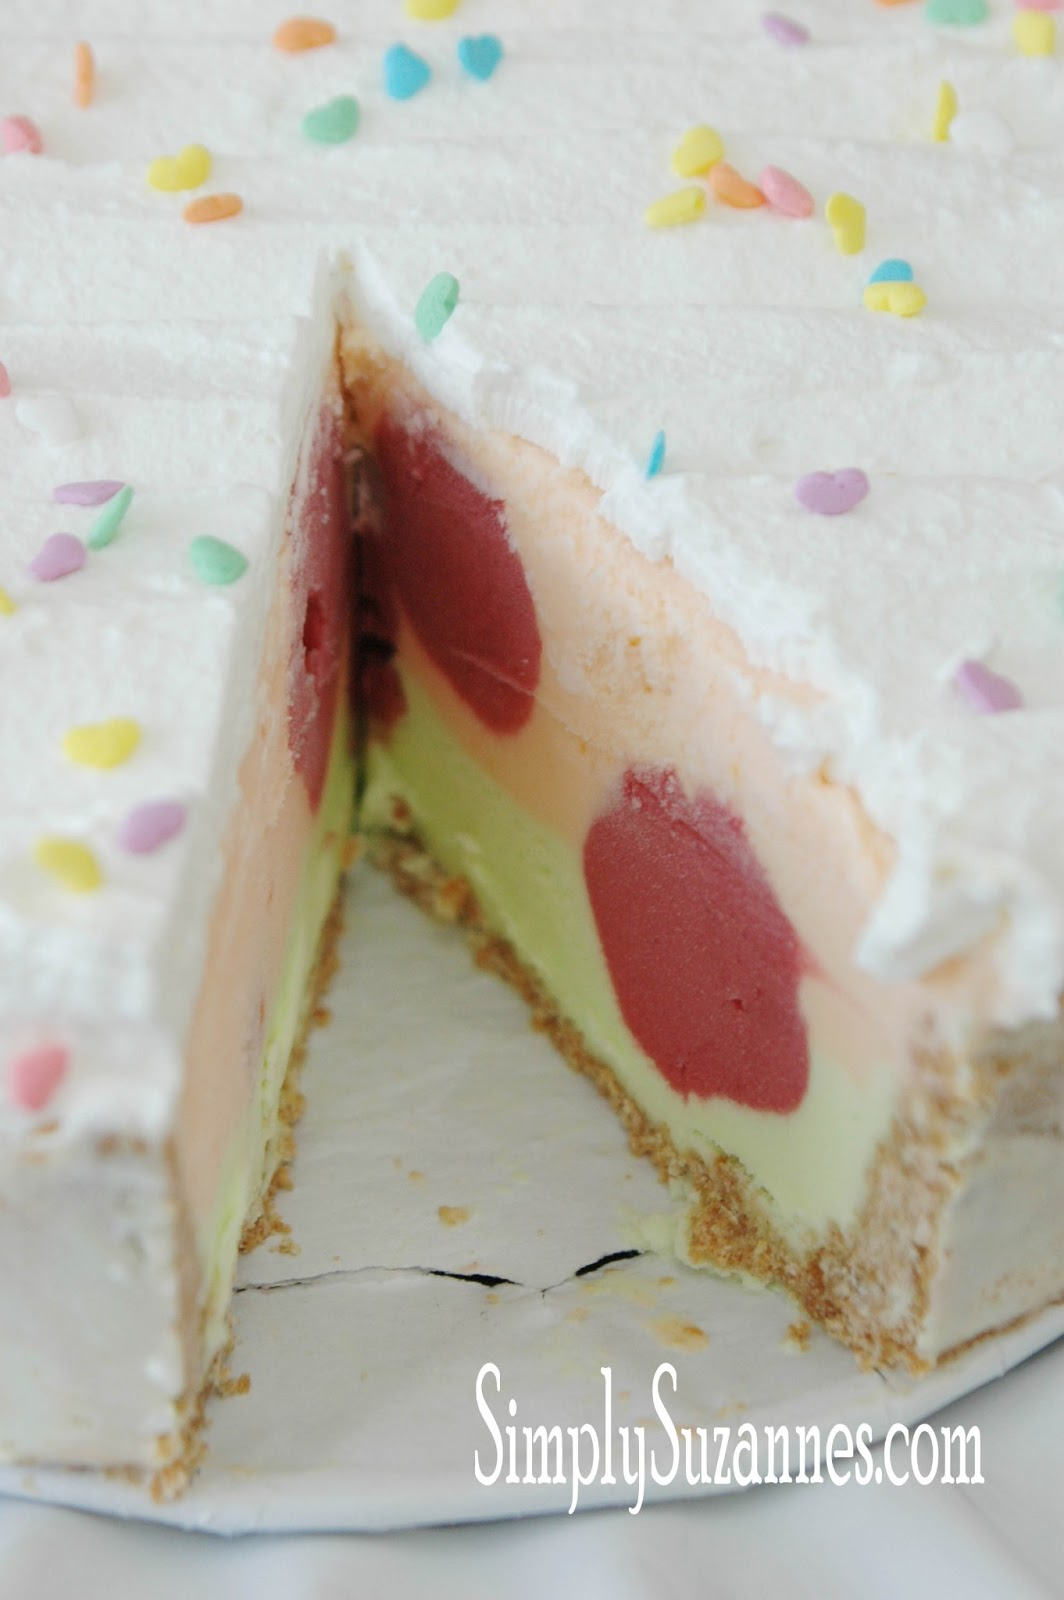 how to prepare ice cream cake at home